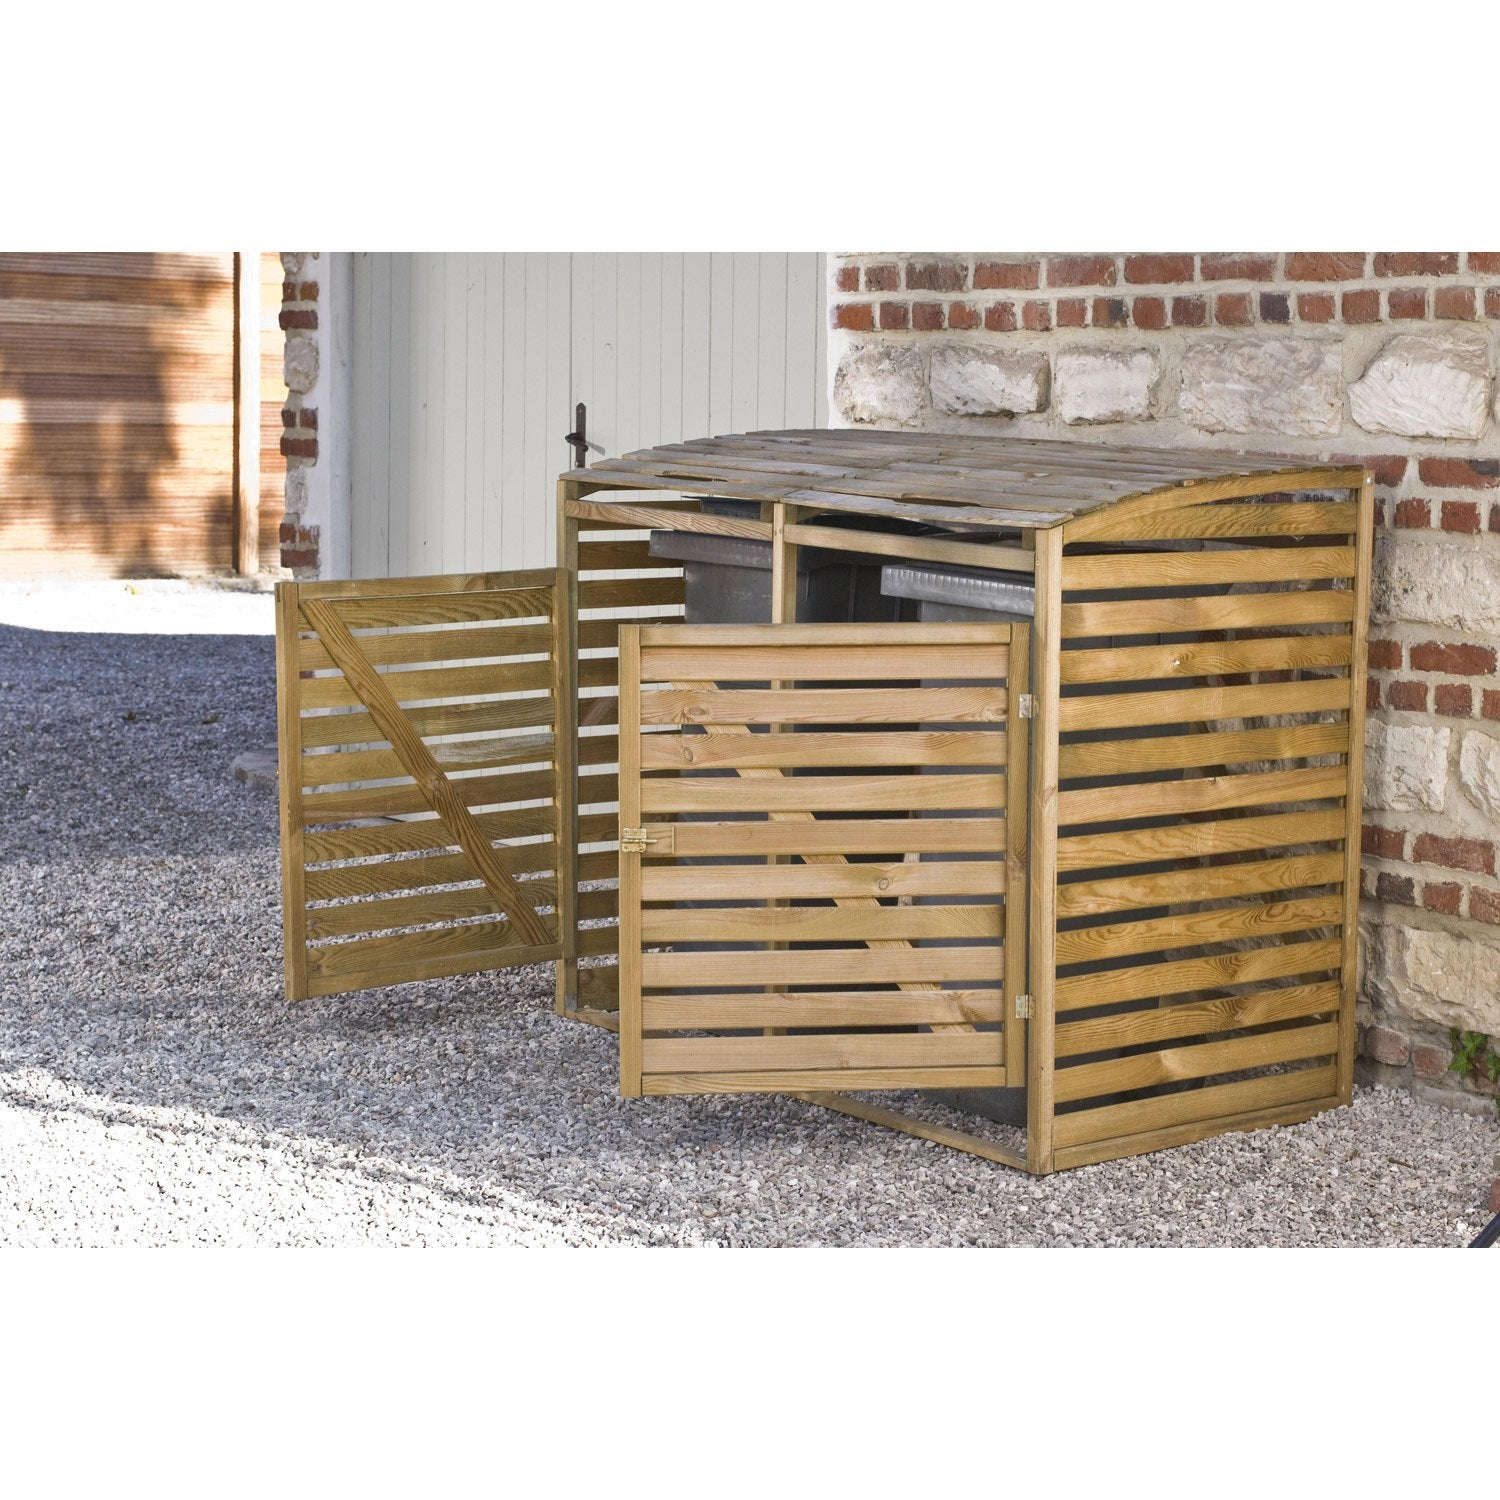 Cache Poubelle Simple En Bois Double M3 Leroy Merlin